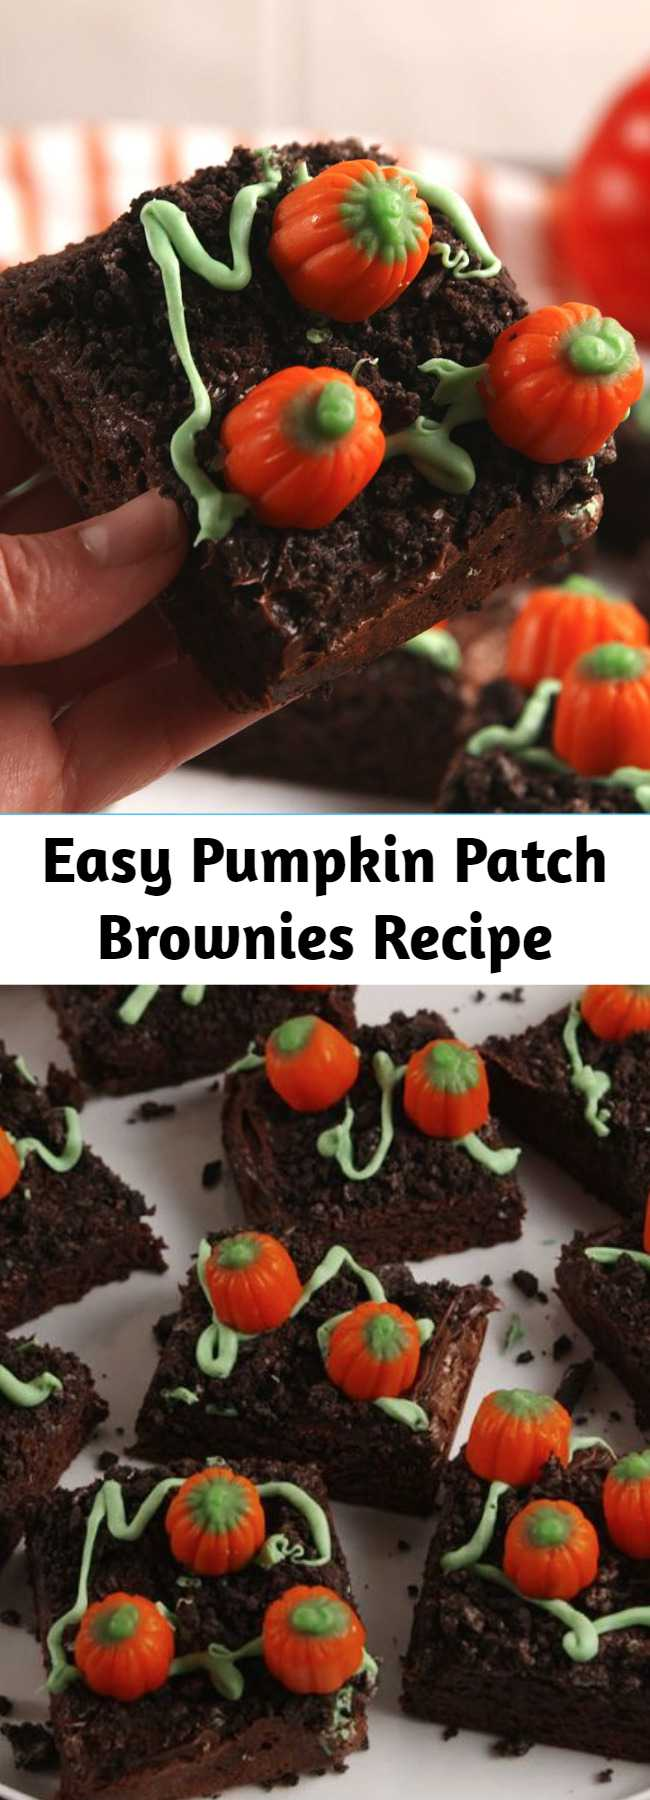 Easy Pumpkin Patch Brownies Recipe - Pumpkin patch brownies turn a regular boxed brownie into the cutest fall dessert. Top with crushed Oreos for dirt and nestle candied pumpkins to look like they are growing from the ground! So simple yet so sweet!